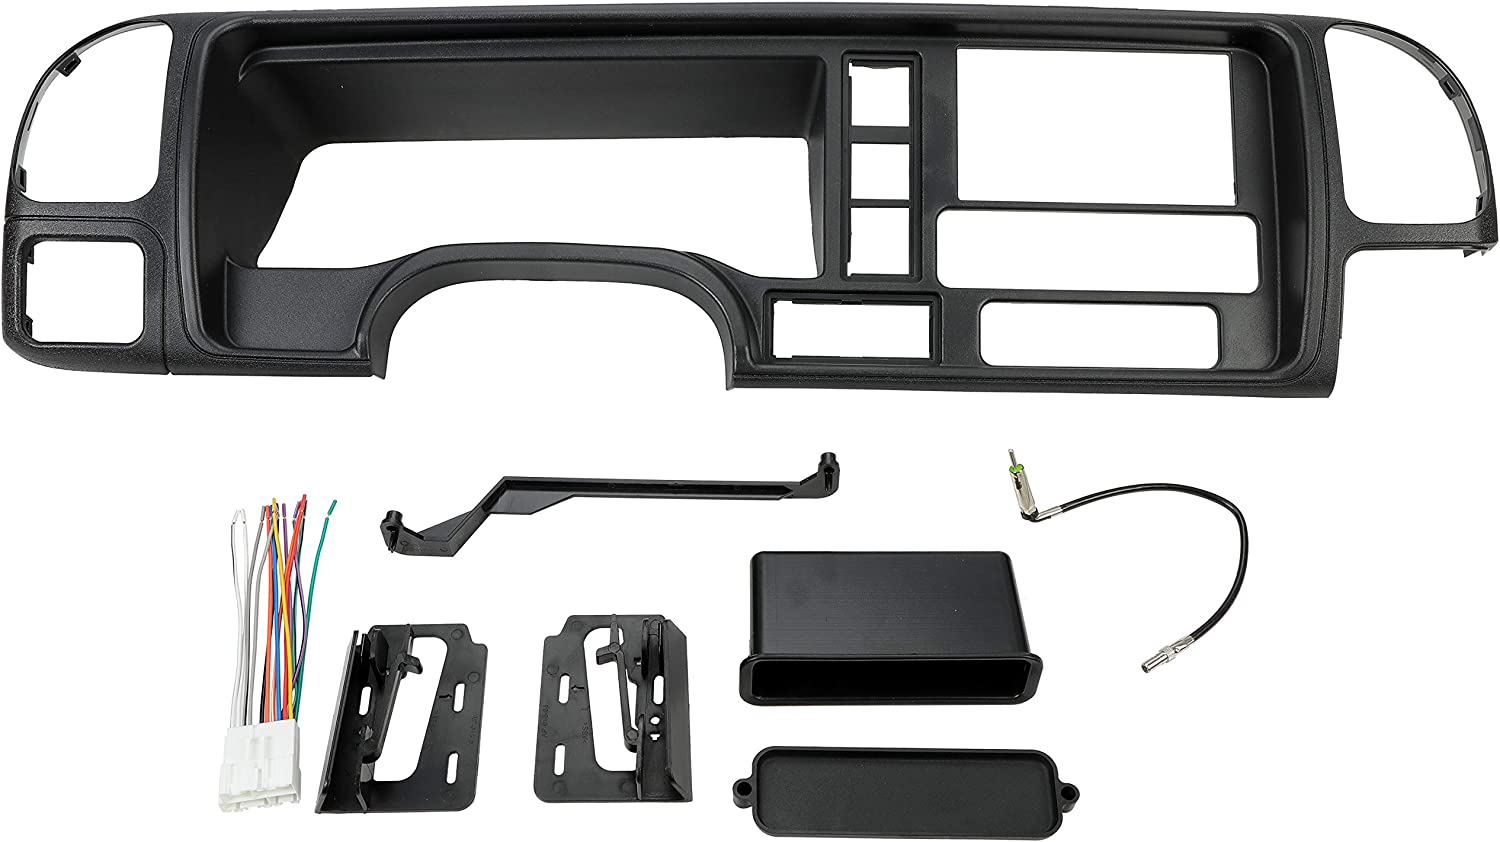 ECOTRIC Car Radio Stereo Double Din Dash Kit Panel Compatible with 1995-2002 GM Truck SUV Wire Harness Trim Bezel Panel